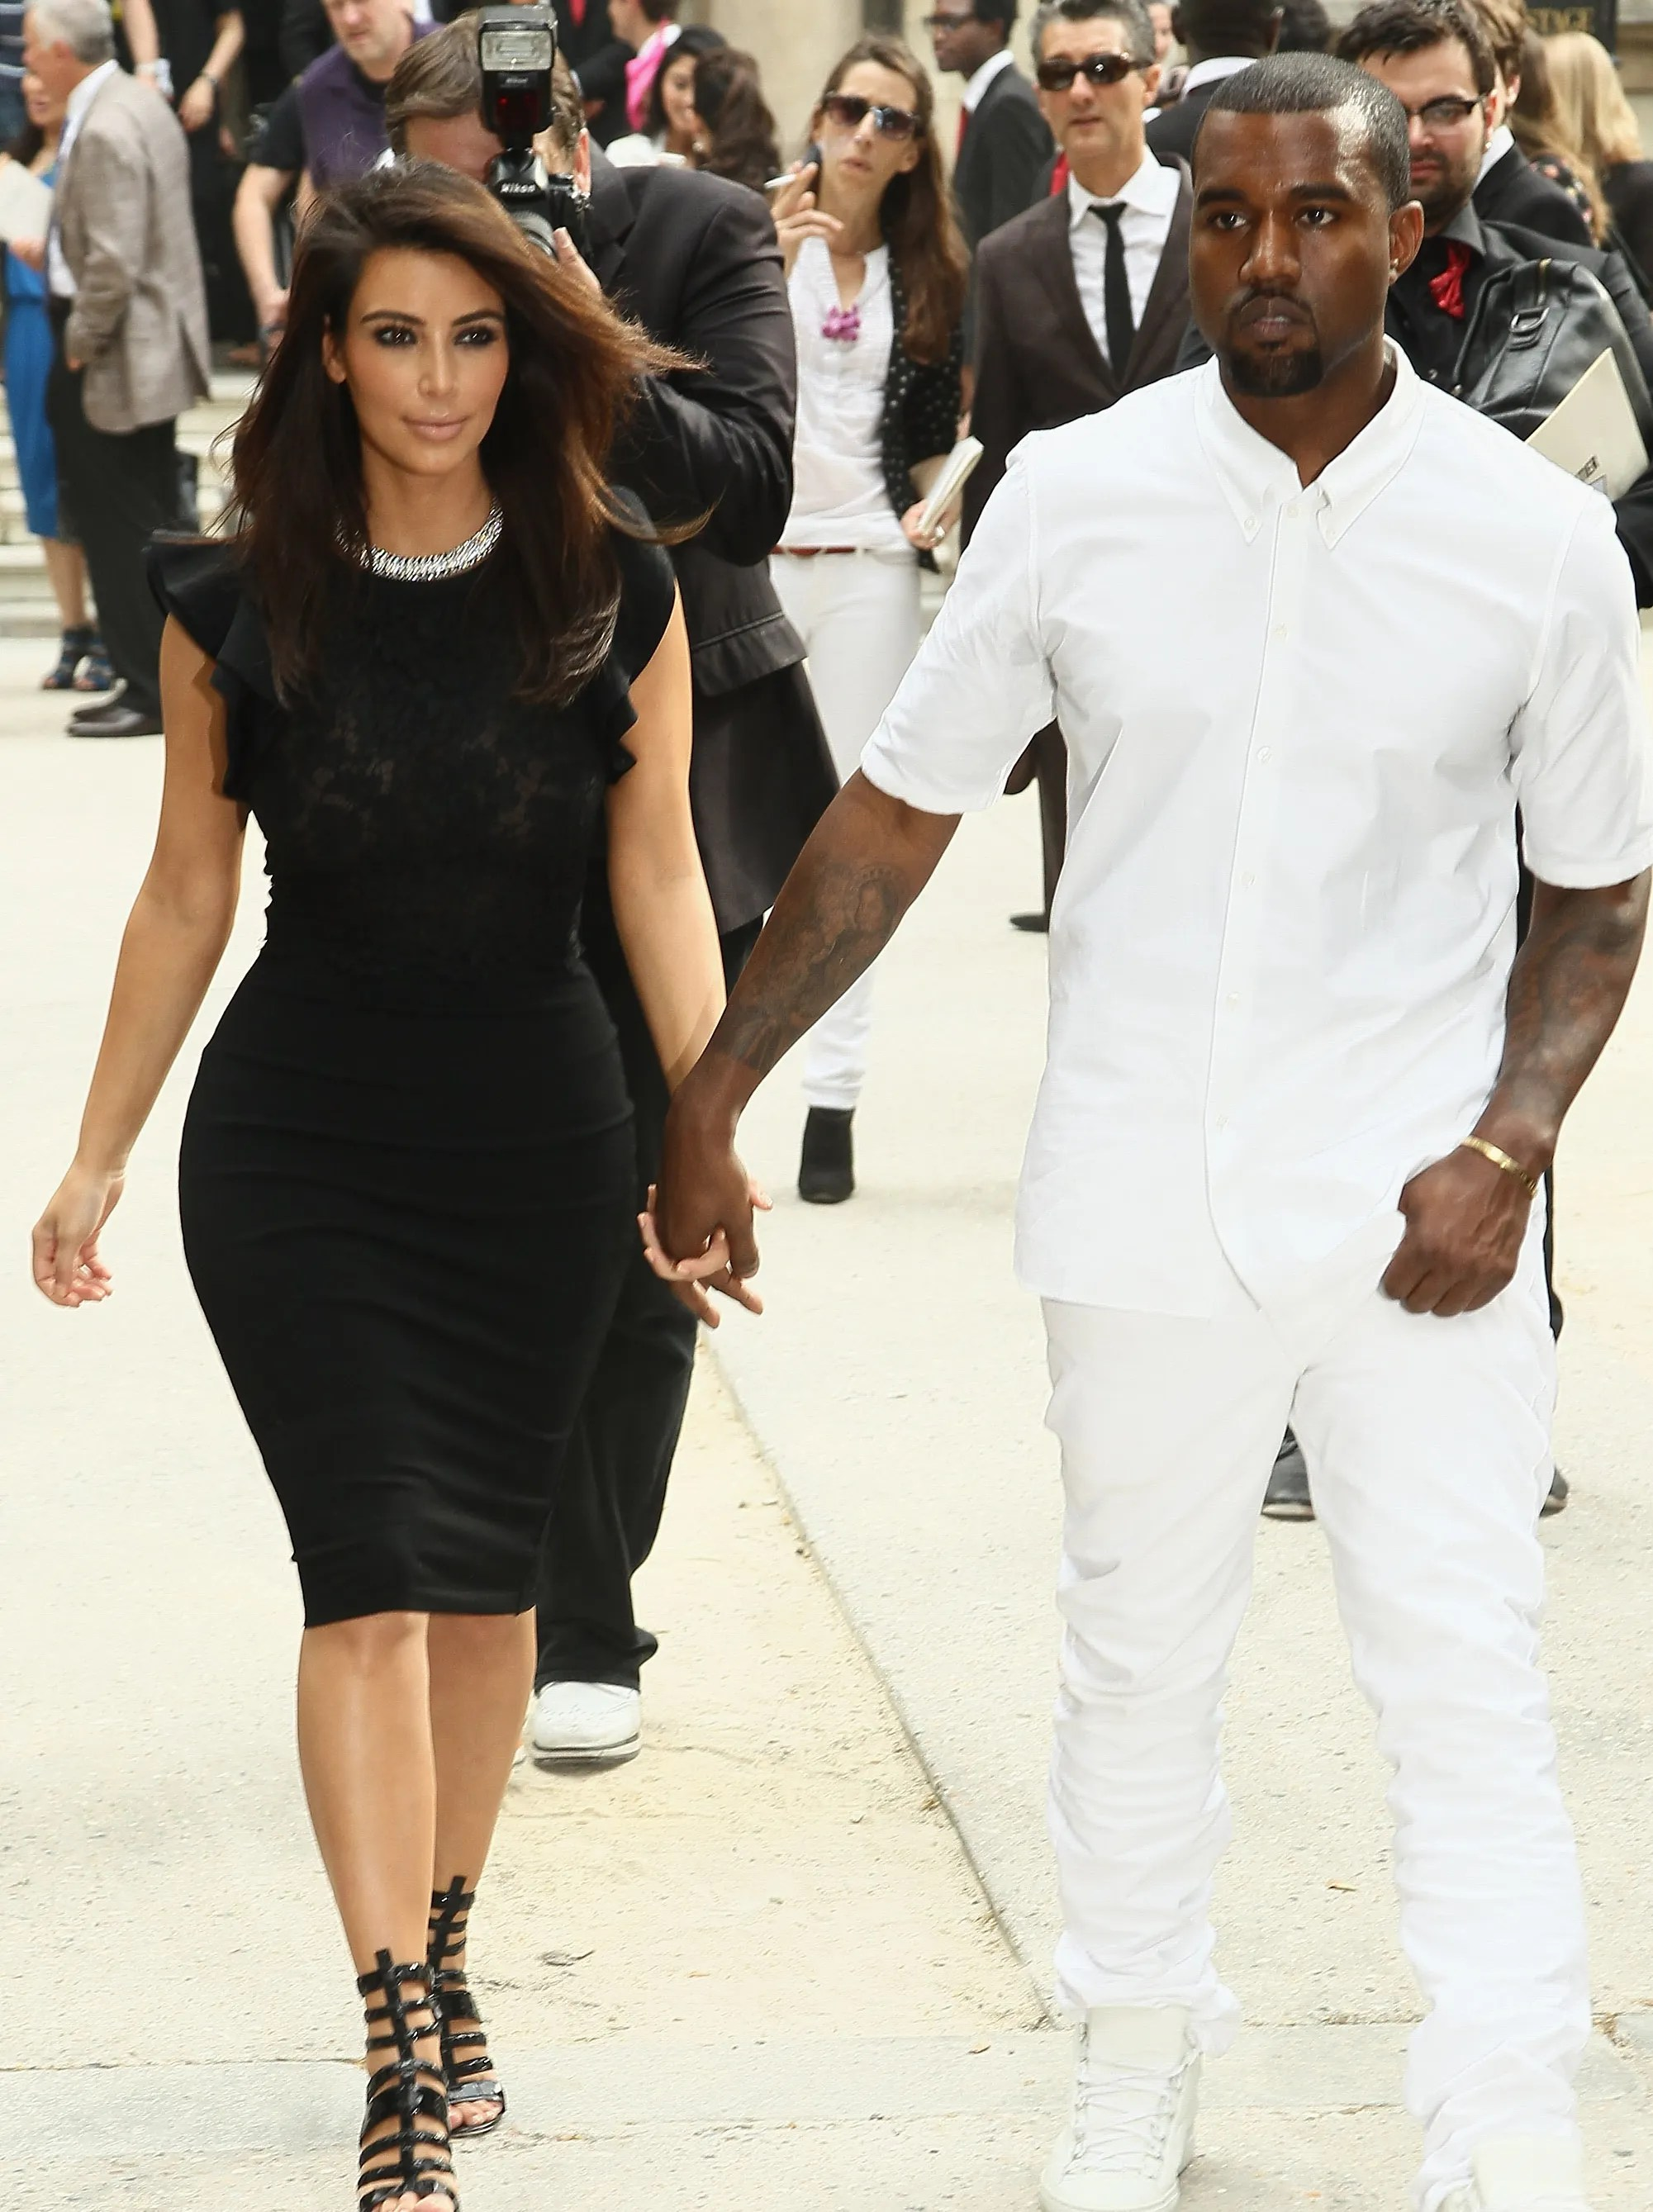 Monochromatic chic as the couple leaves the Valentino show in Paris on July 4, 2012.